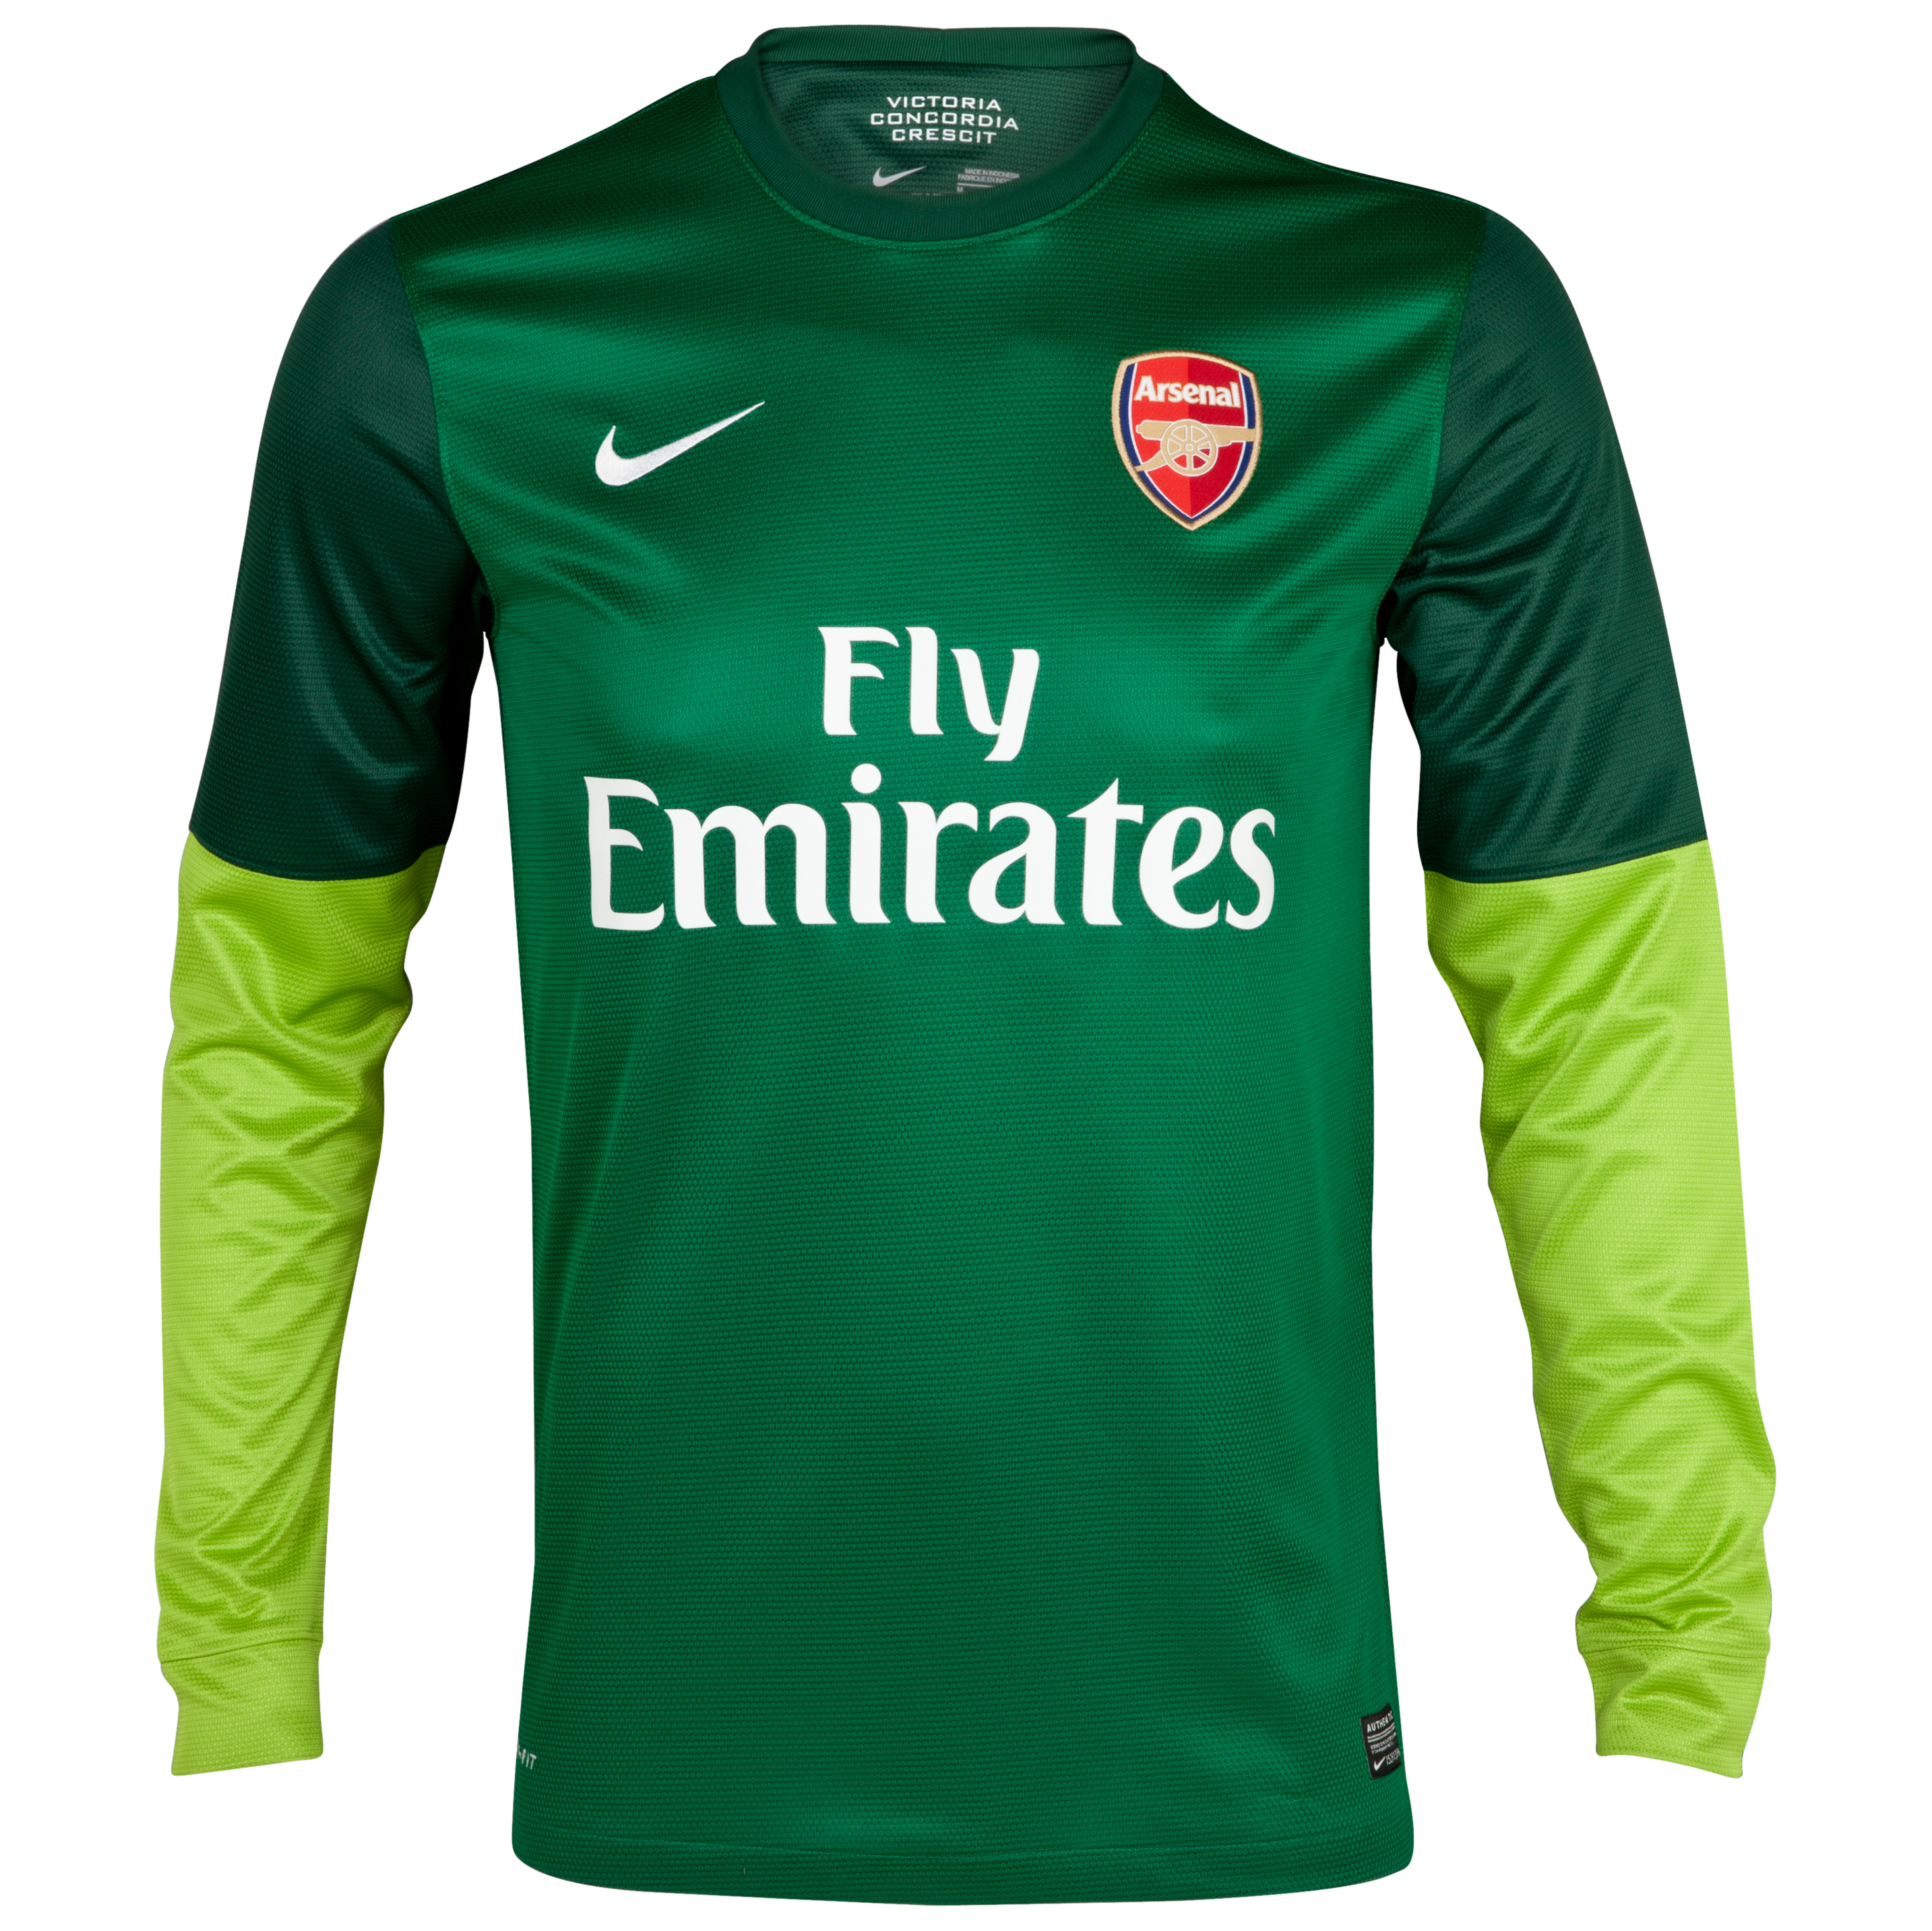 Arsenal Home Goalkeeper Shirt 2012/13